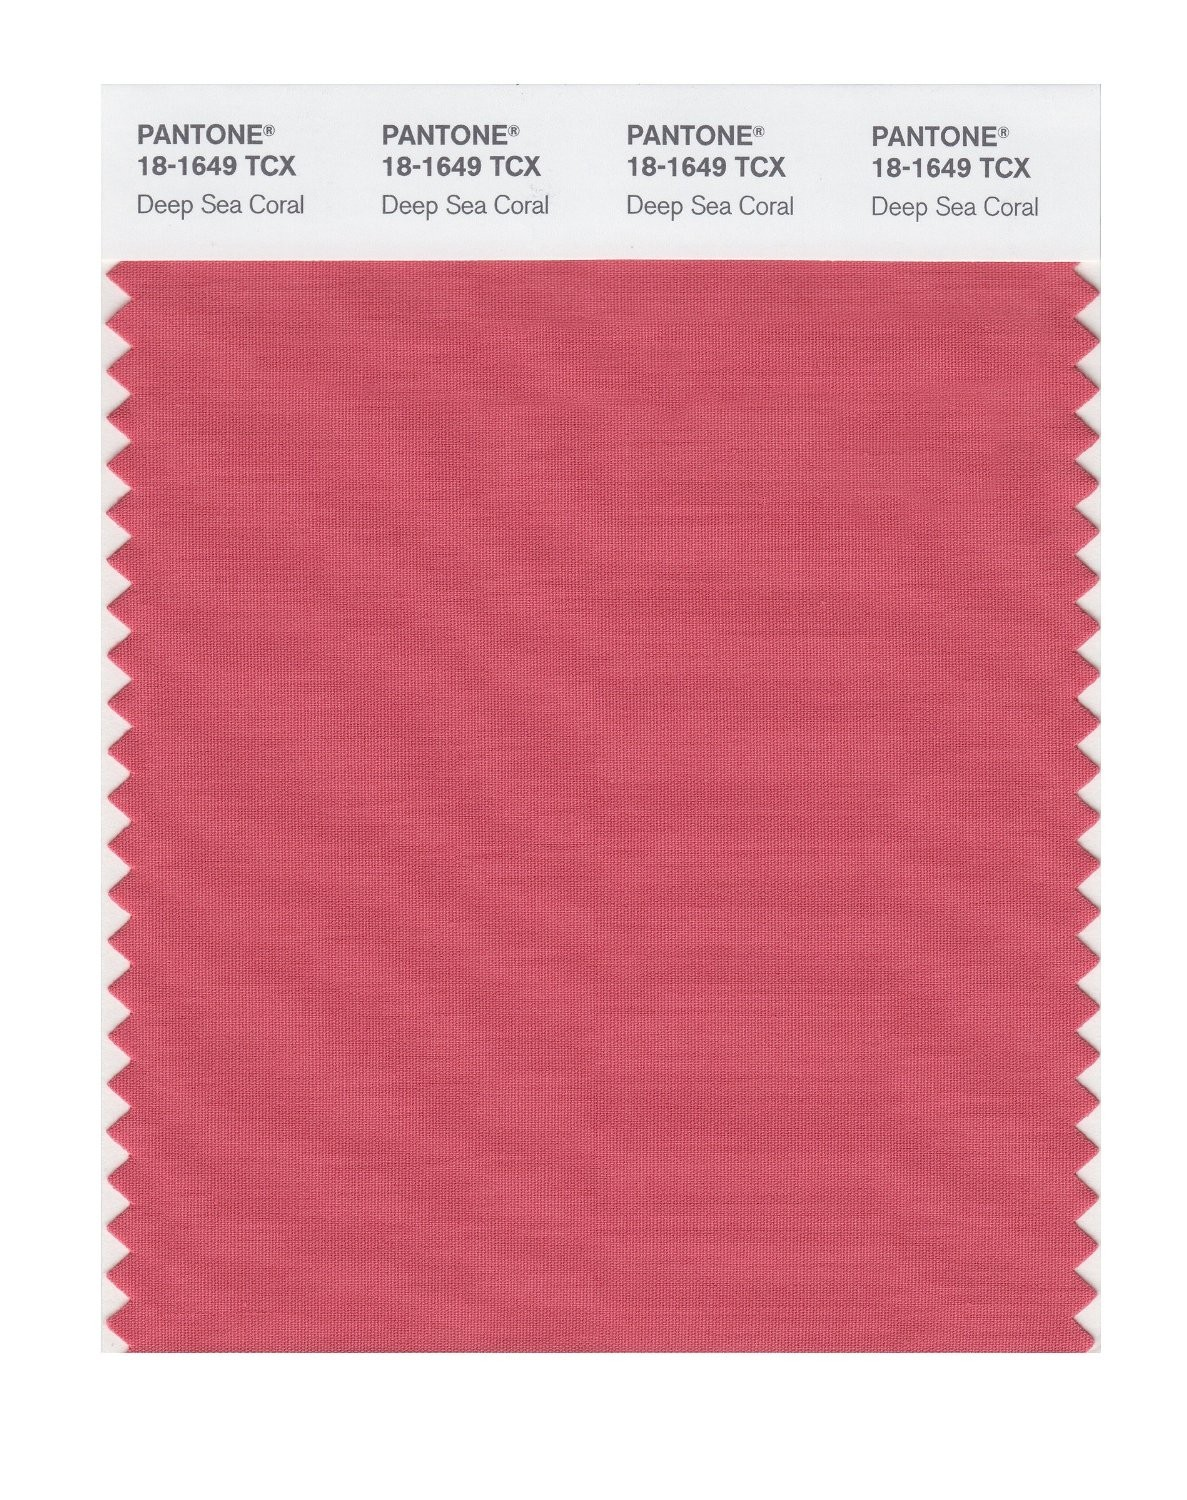 Pantone 18-1649 TCX Swatch Card Deep Sea Coral